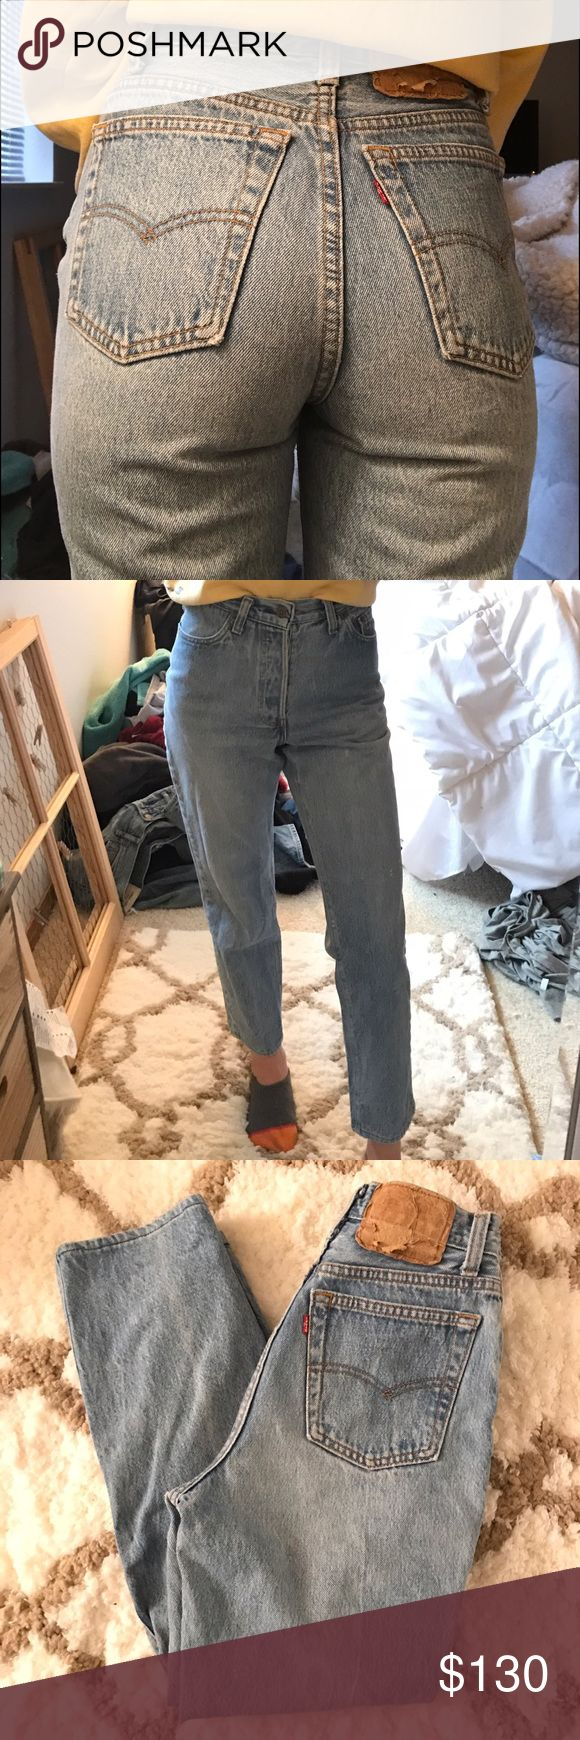 """Vintage Levi's 501s! Beautiful vintage 501s women's style! These are a light wash and extra high rise. These have been hemmed. The waist measures at 24"""", rise 10.5"""", hips 36"""", inseam 26"""". These jeans are honestly perfect, they're soft denim, so comfy, skinny throughout the whole leg and fit amazing! They're just a tad too big for my hips :( the price is pretty firm because if no one buys them I'm going to alter them to fit me Levi's Jeans Skinny"""